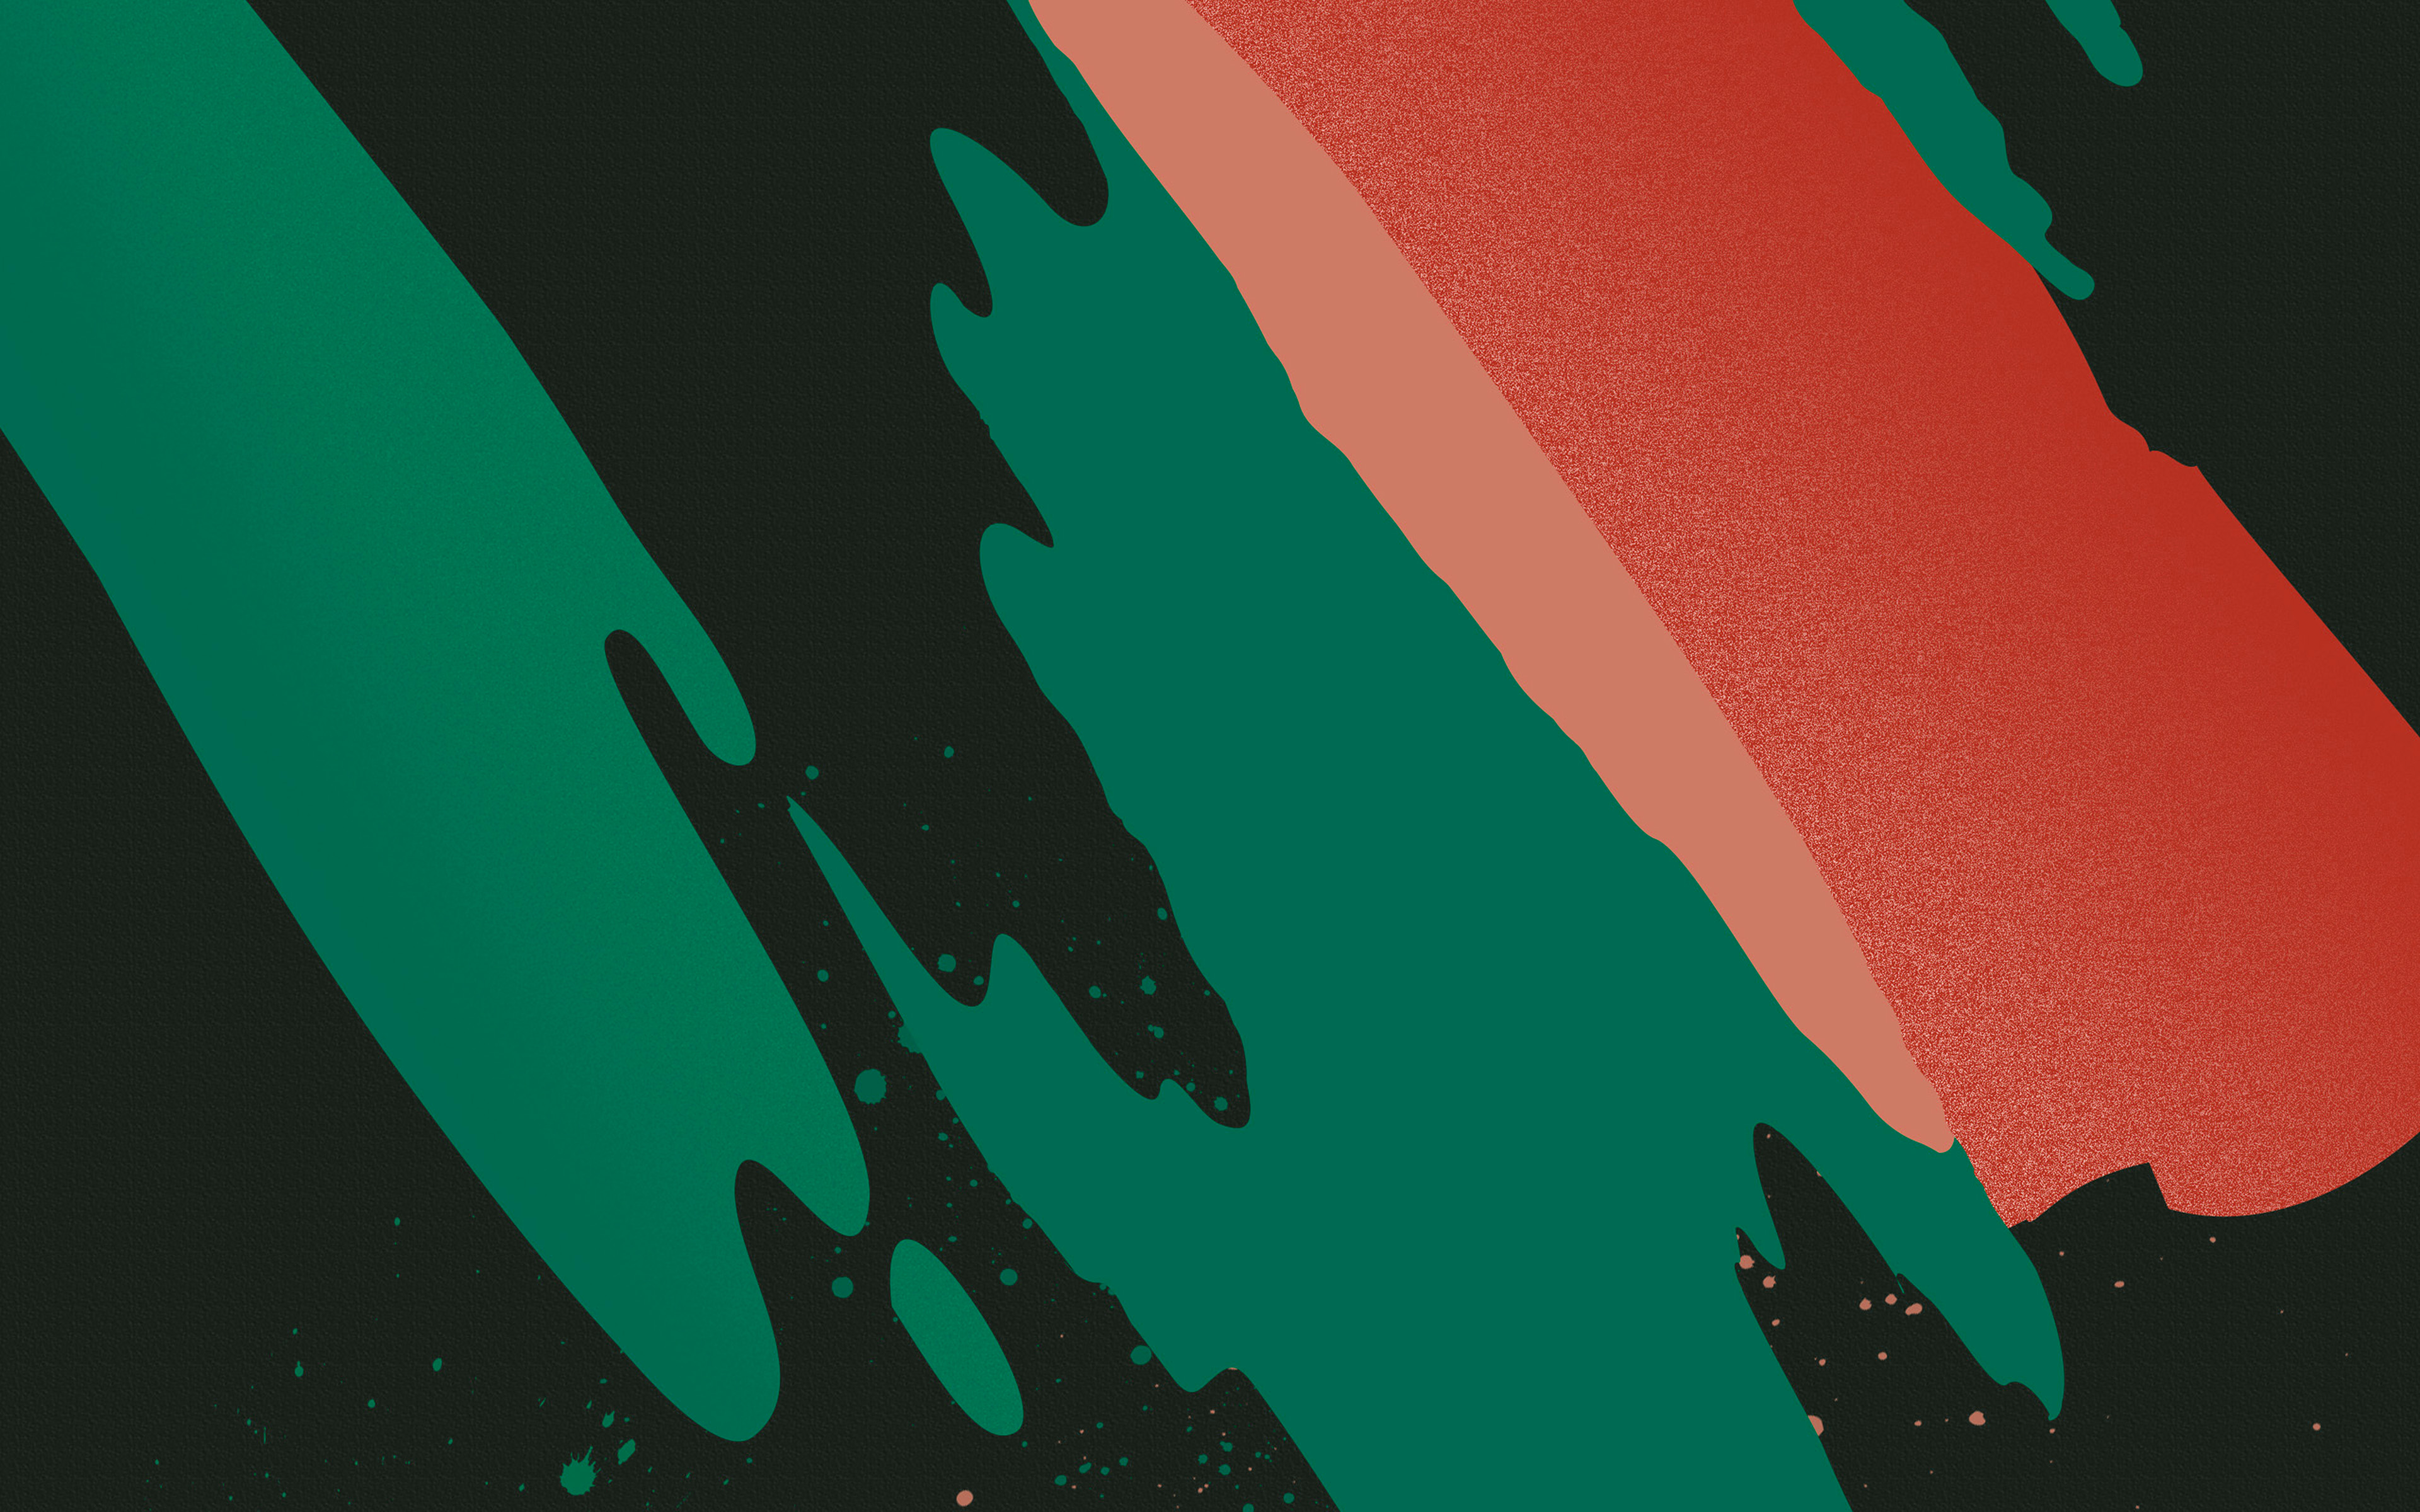 vs23-paint-abstract-background-htc-dark-red-green-pattern ...